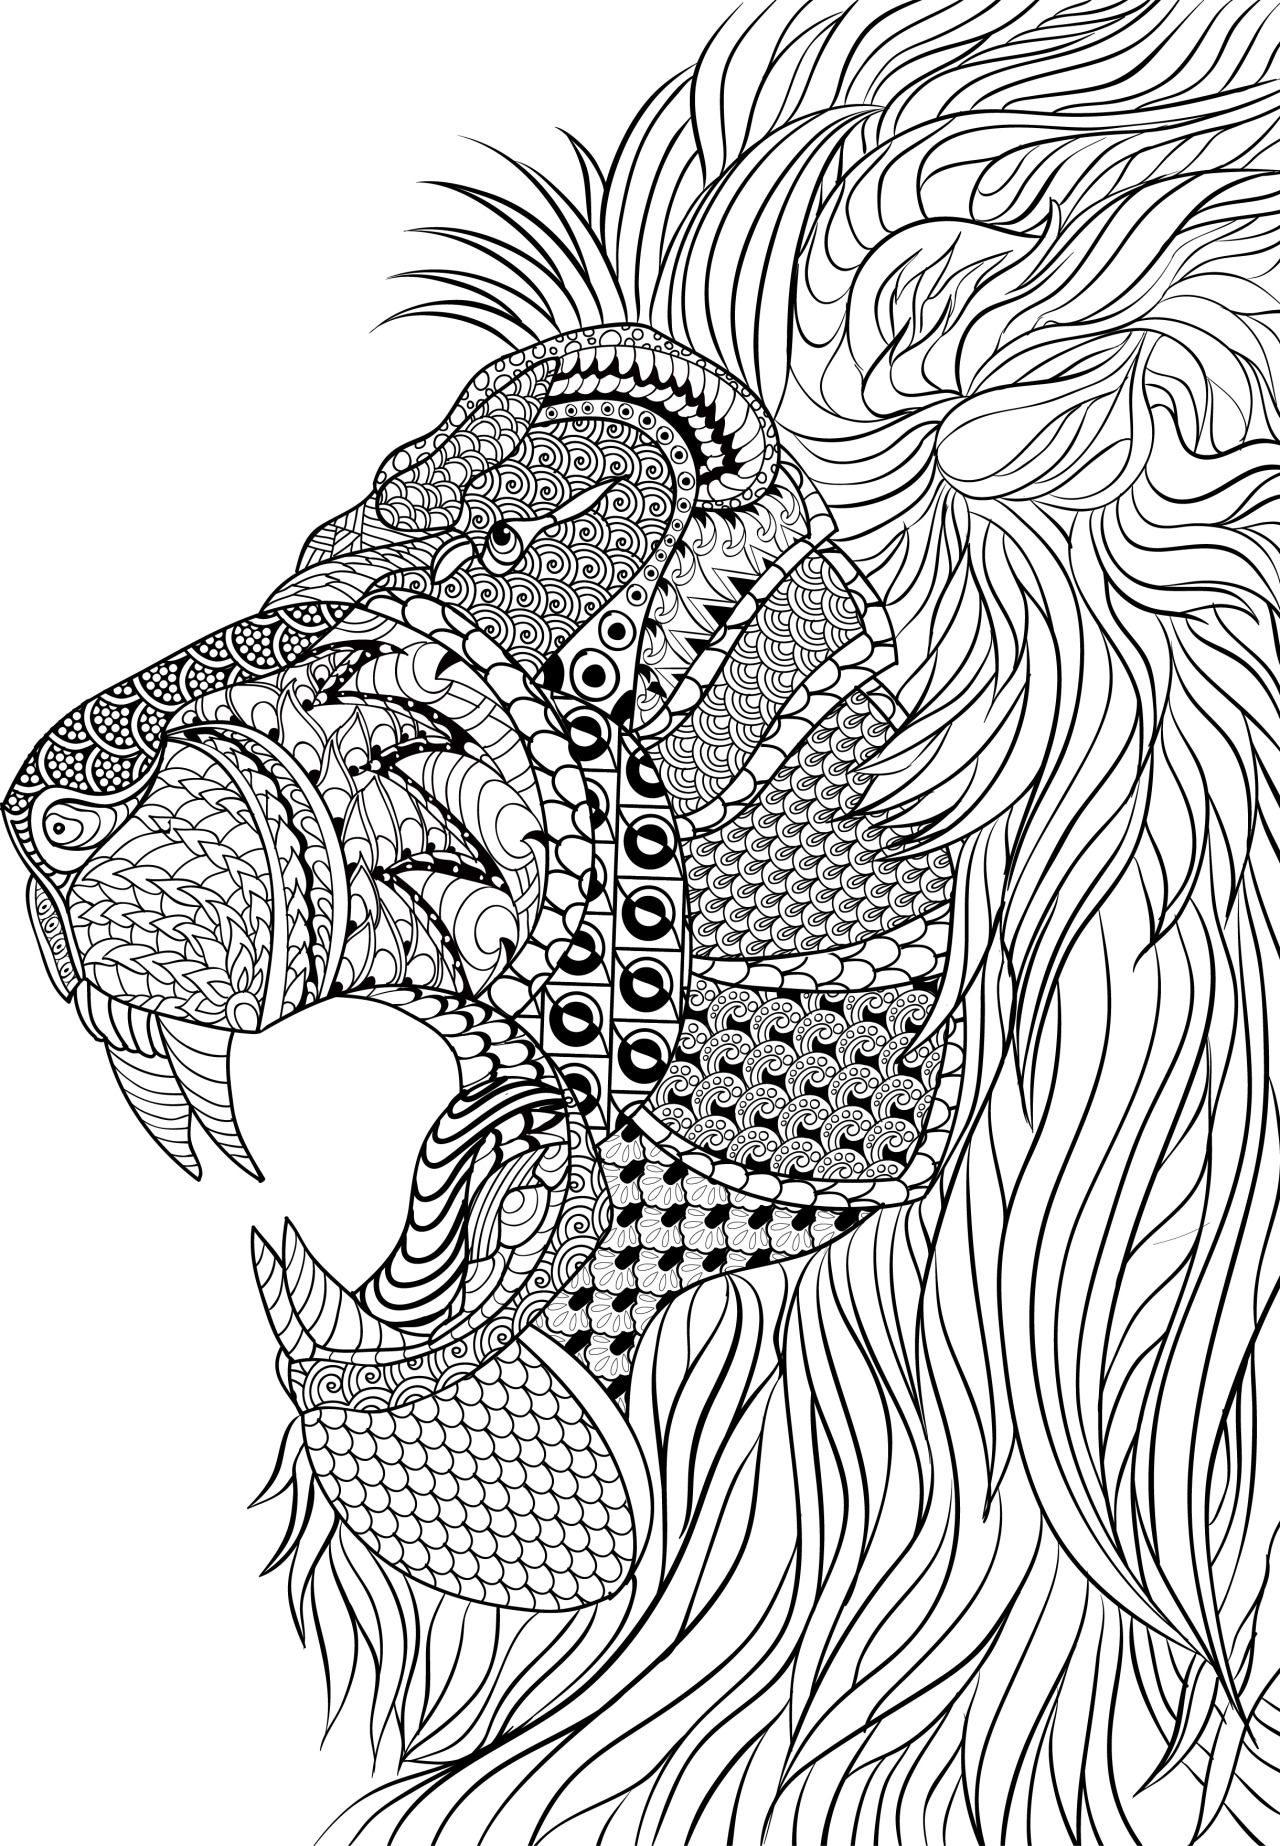 Mandalas De Animales Buscar Con Google With Images Lion